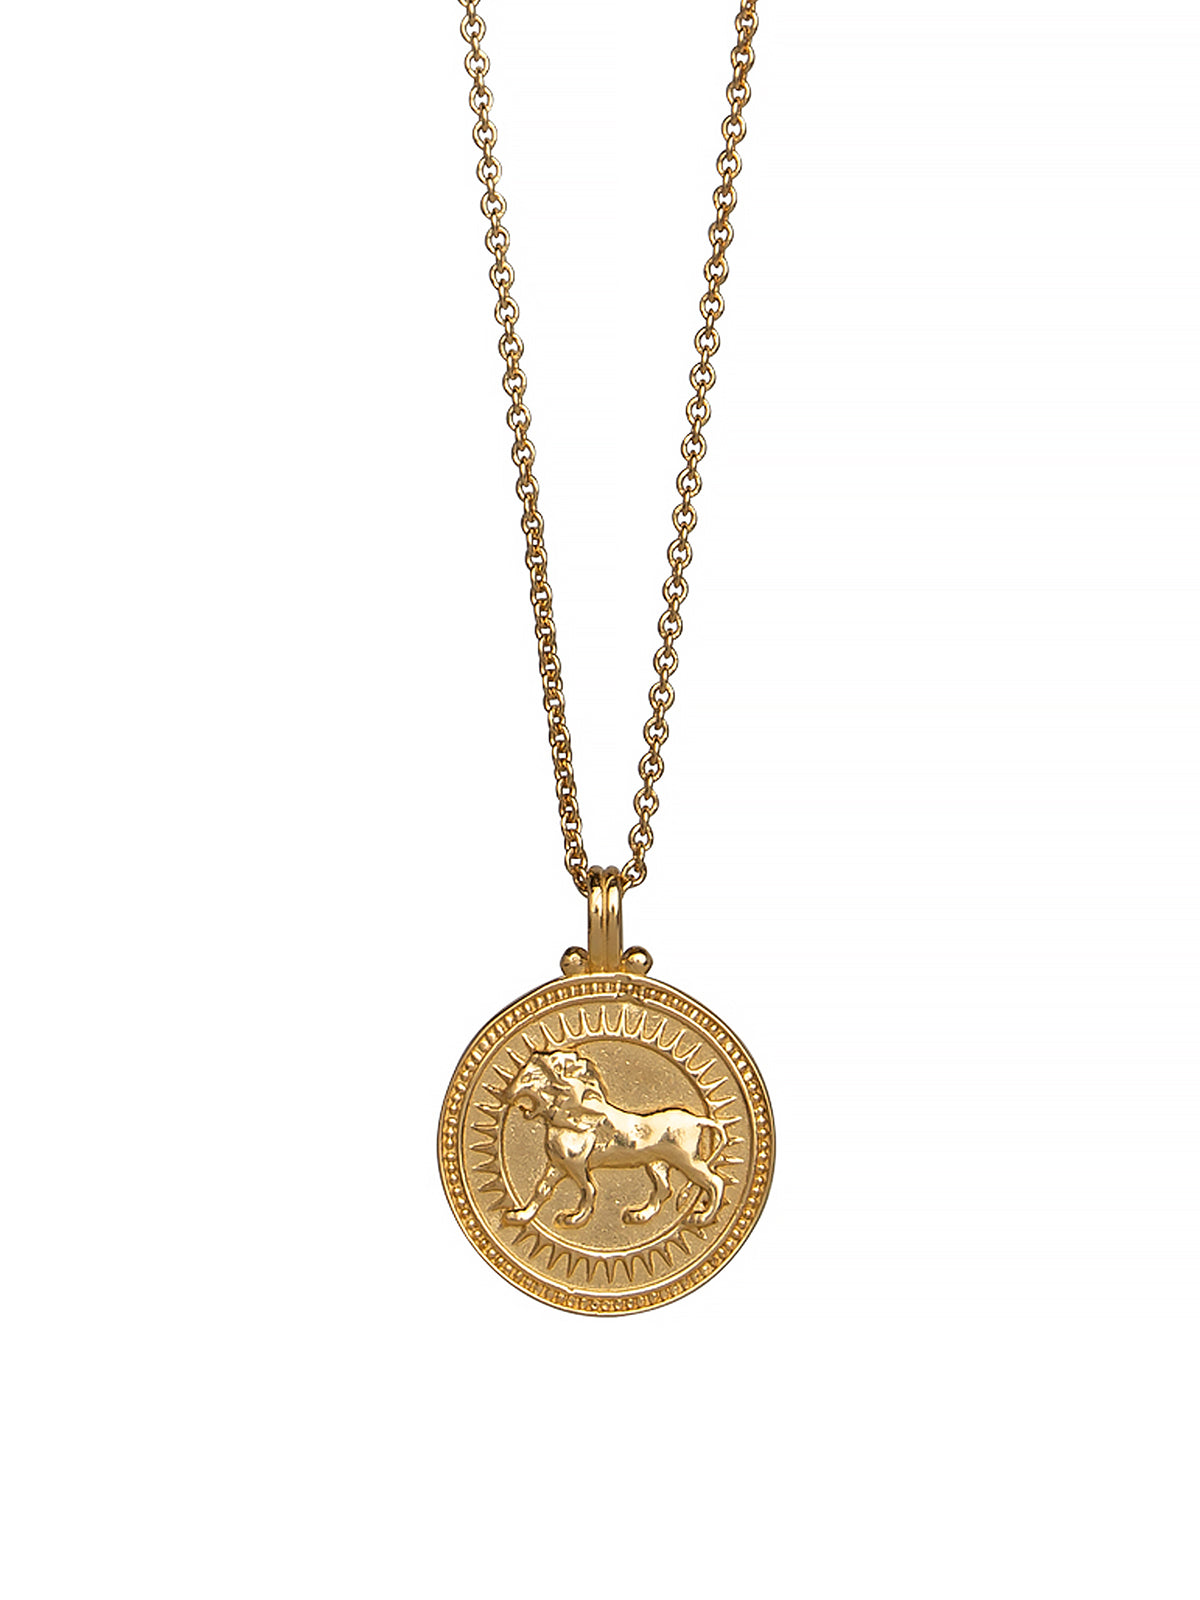 Leo Zodiac Necklace Gender Neutral, 23c Gold Vermeil. 獅子座 星座